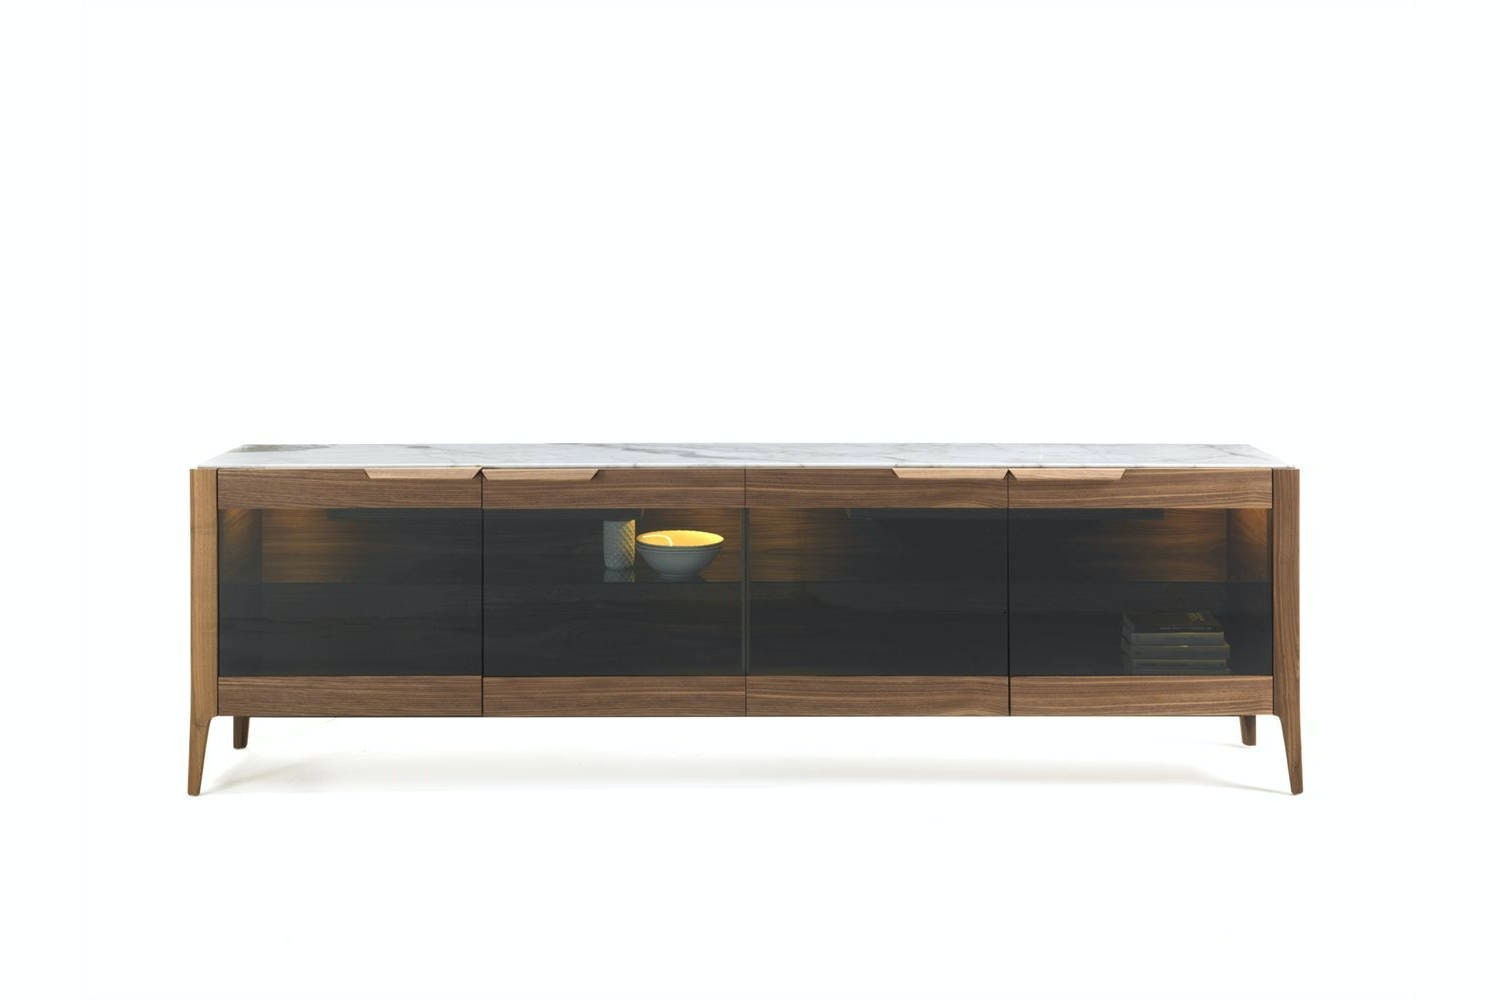 Atlante 4 Glass Sideboard by C. Ballabio for Porada